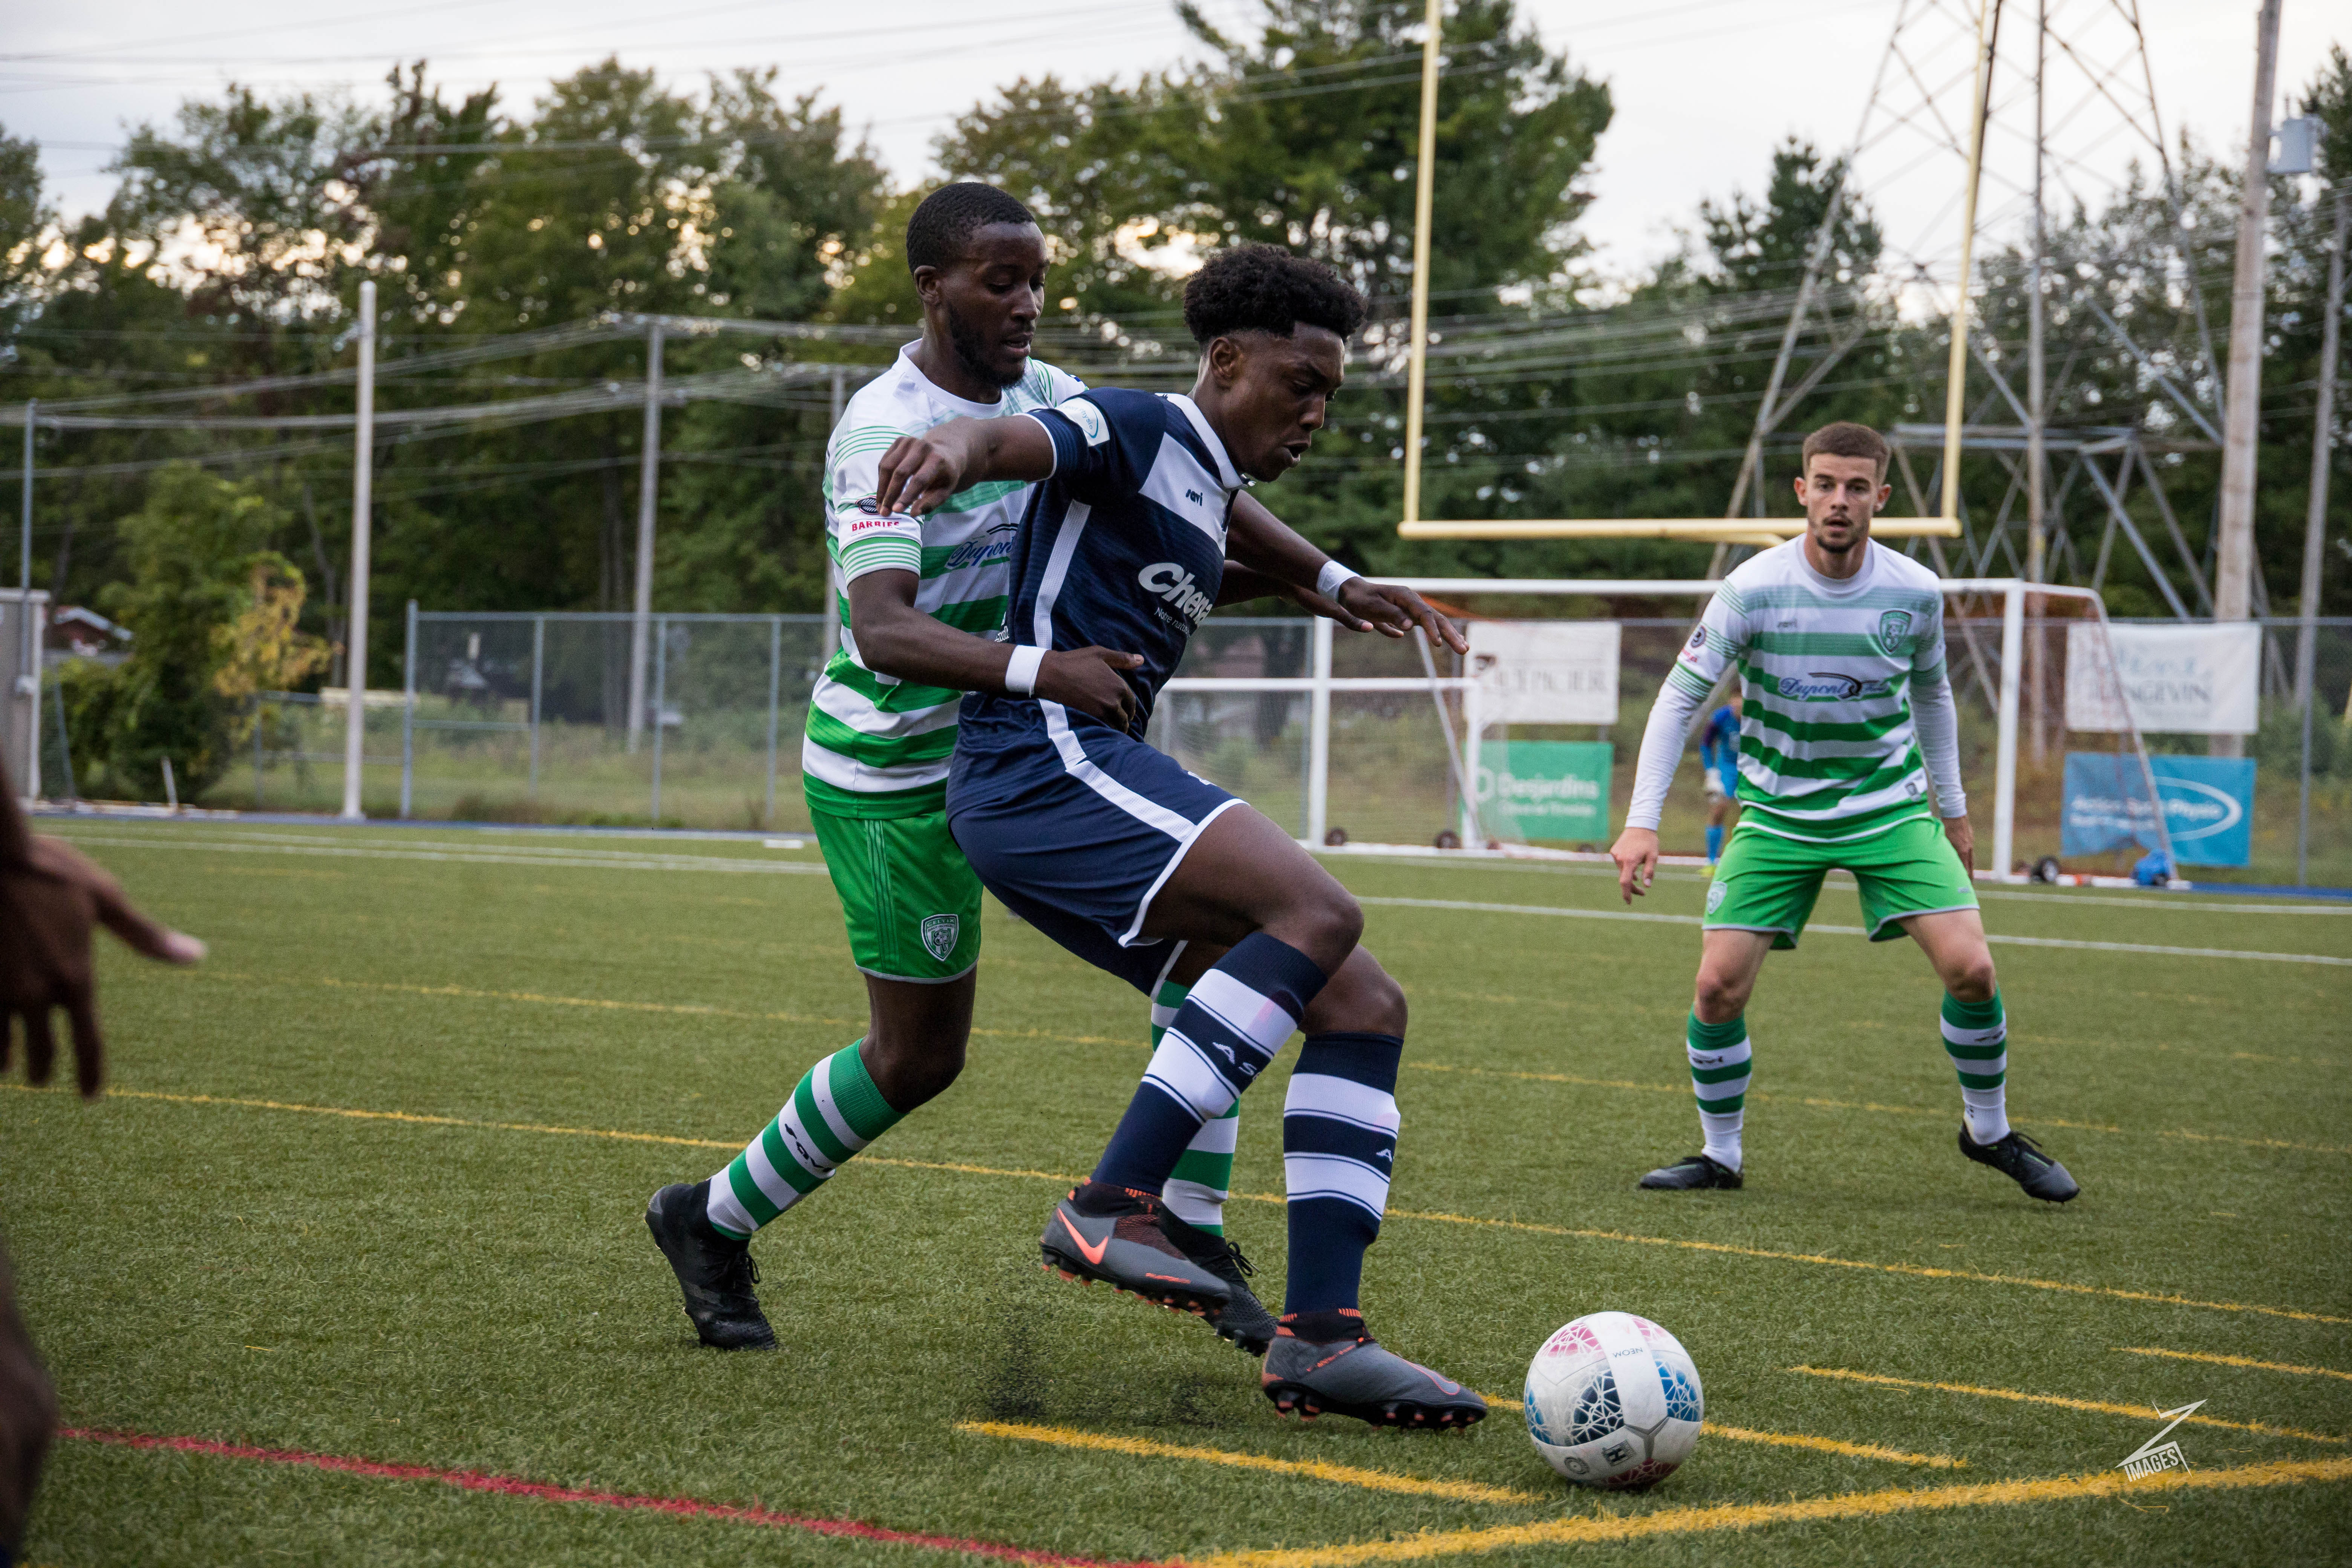 Garven-Michée Metusala in action for AS Blainville. (Photo c/o Metusala)